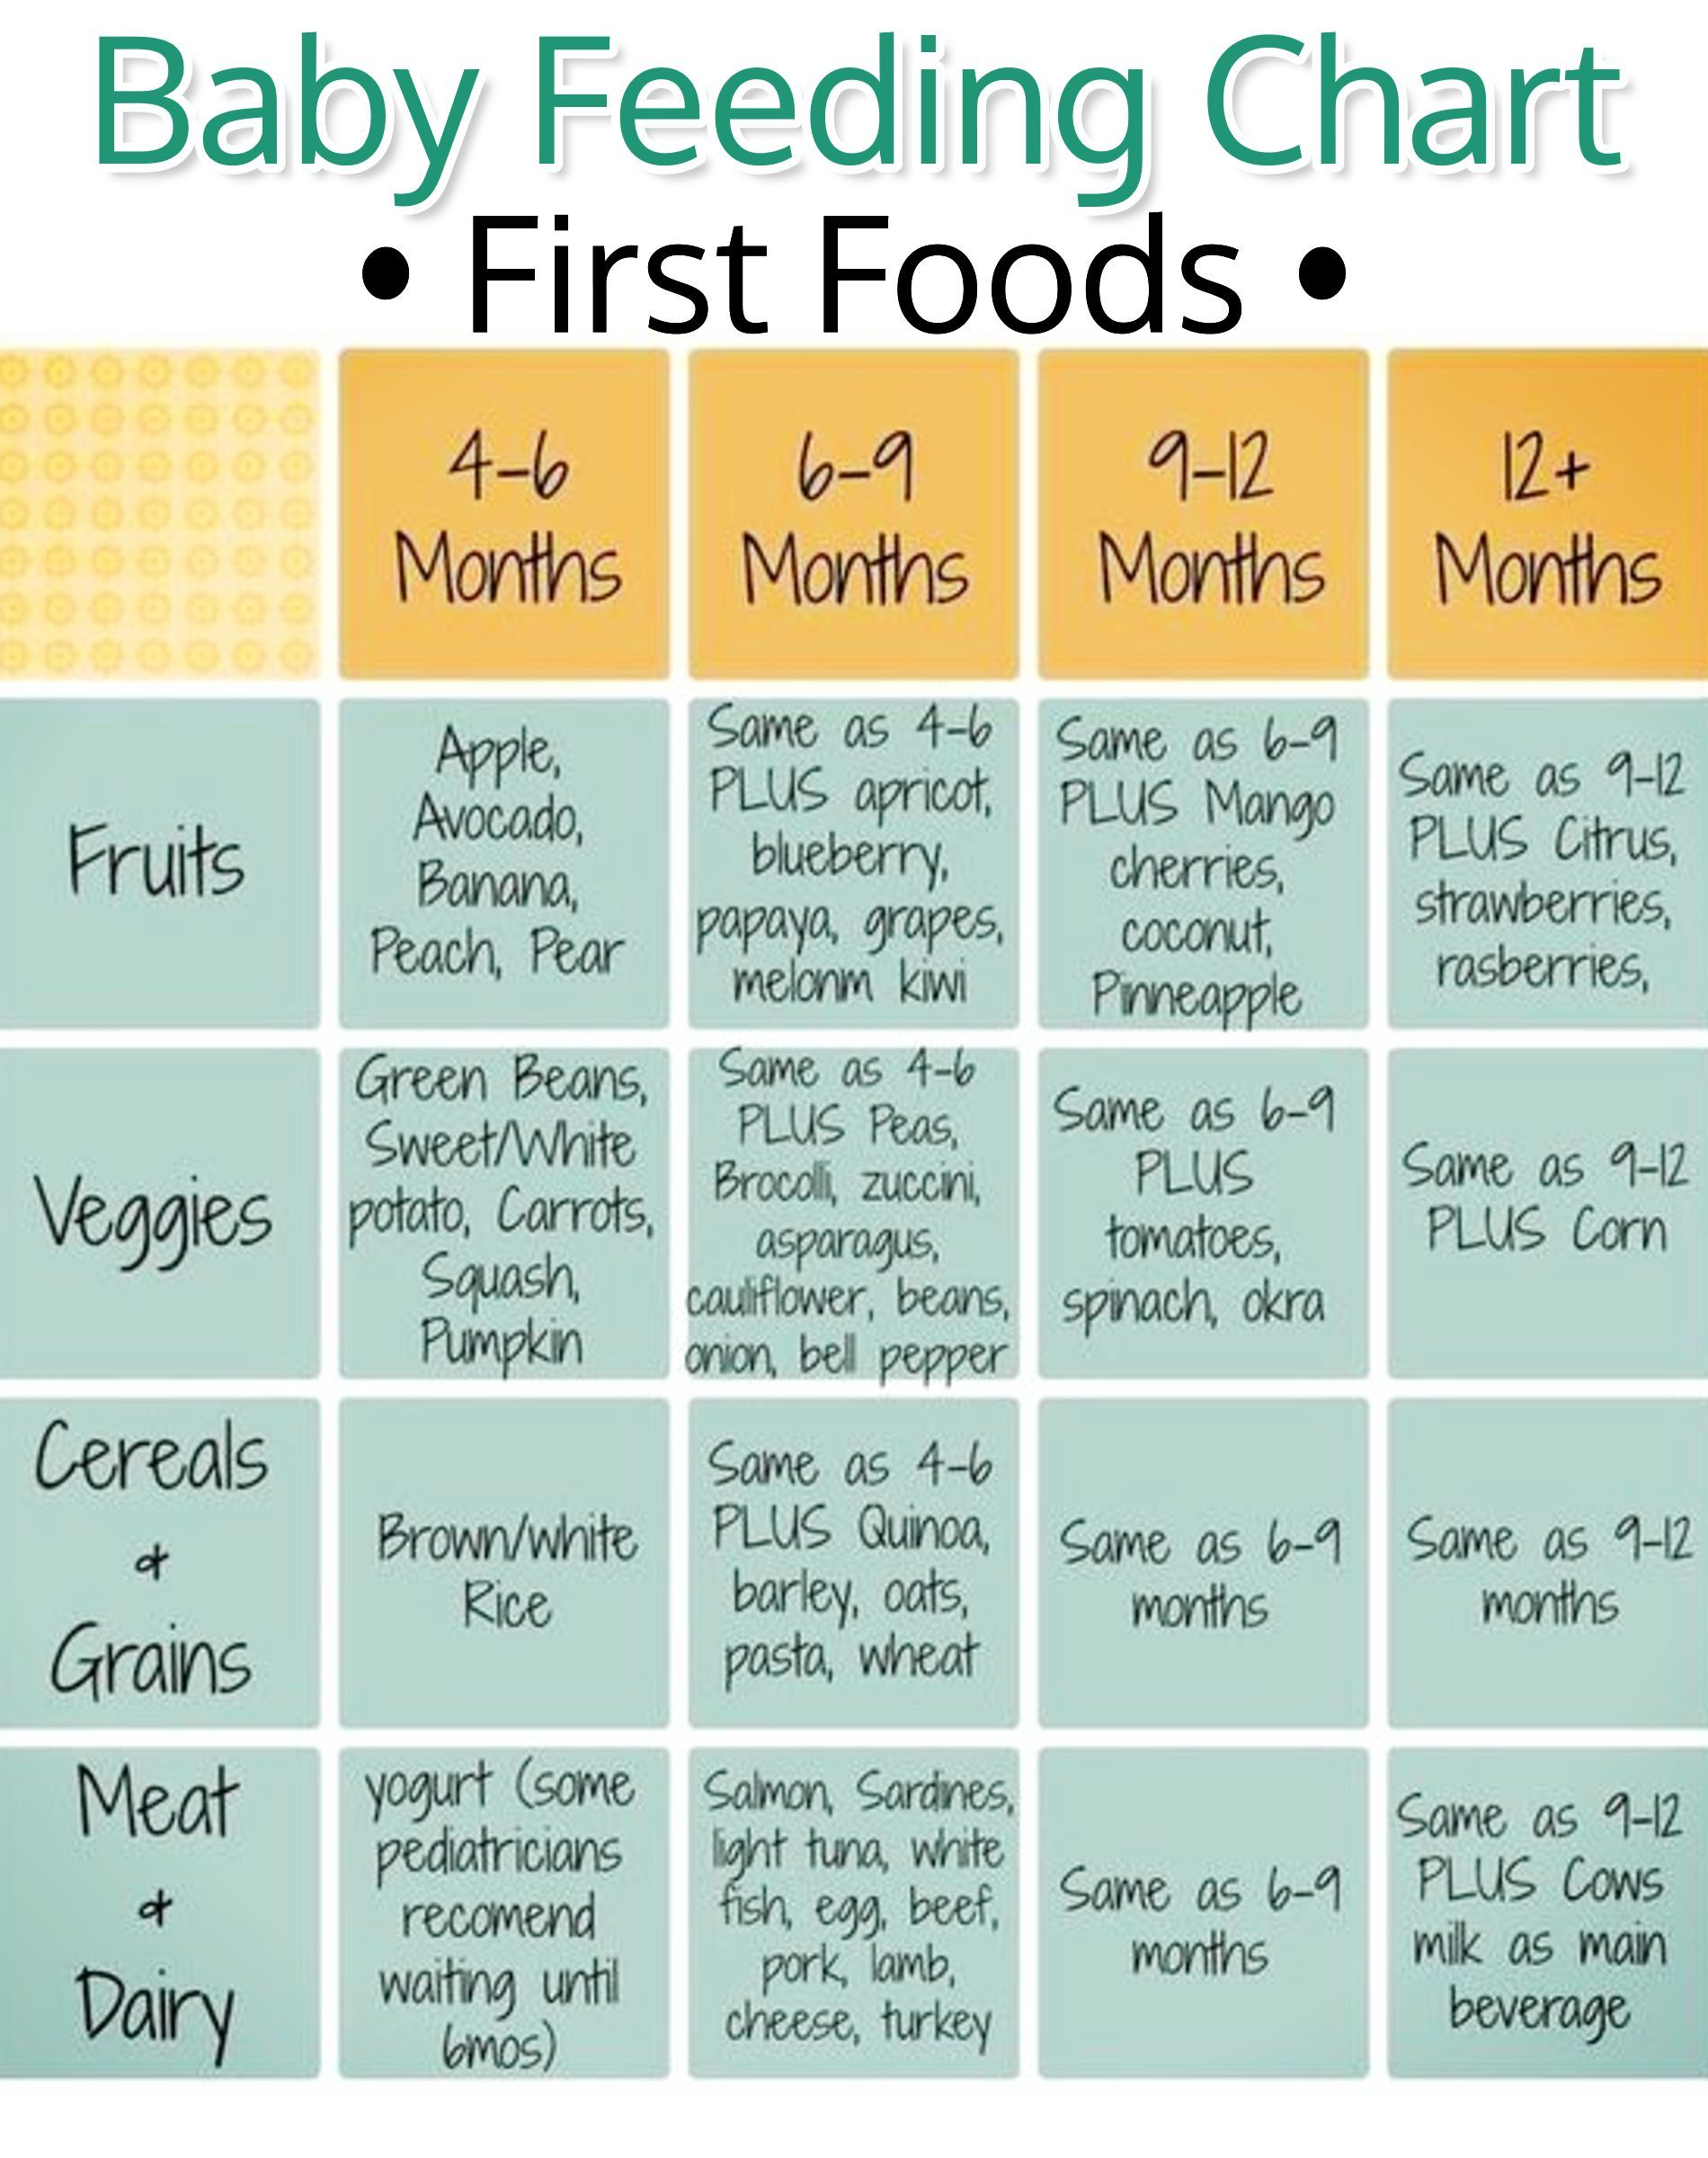 Baby Feeding Chart For First Baby Foods Helpful Chart For Baby S First Solids Healthy Baby Food Baby Food Schedule Baby First Food Chart